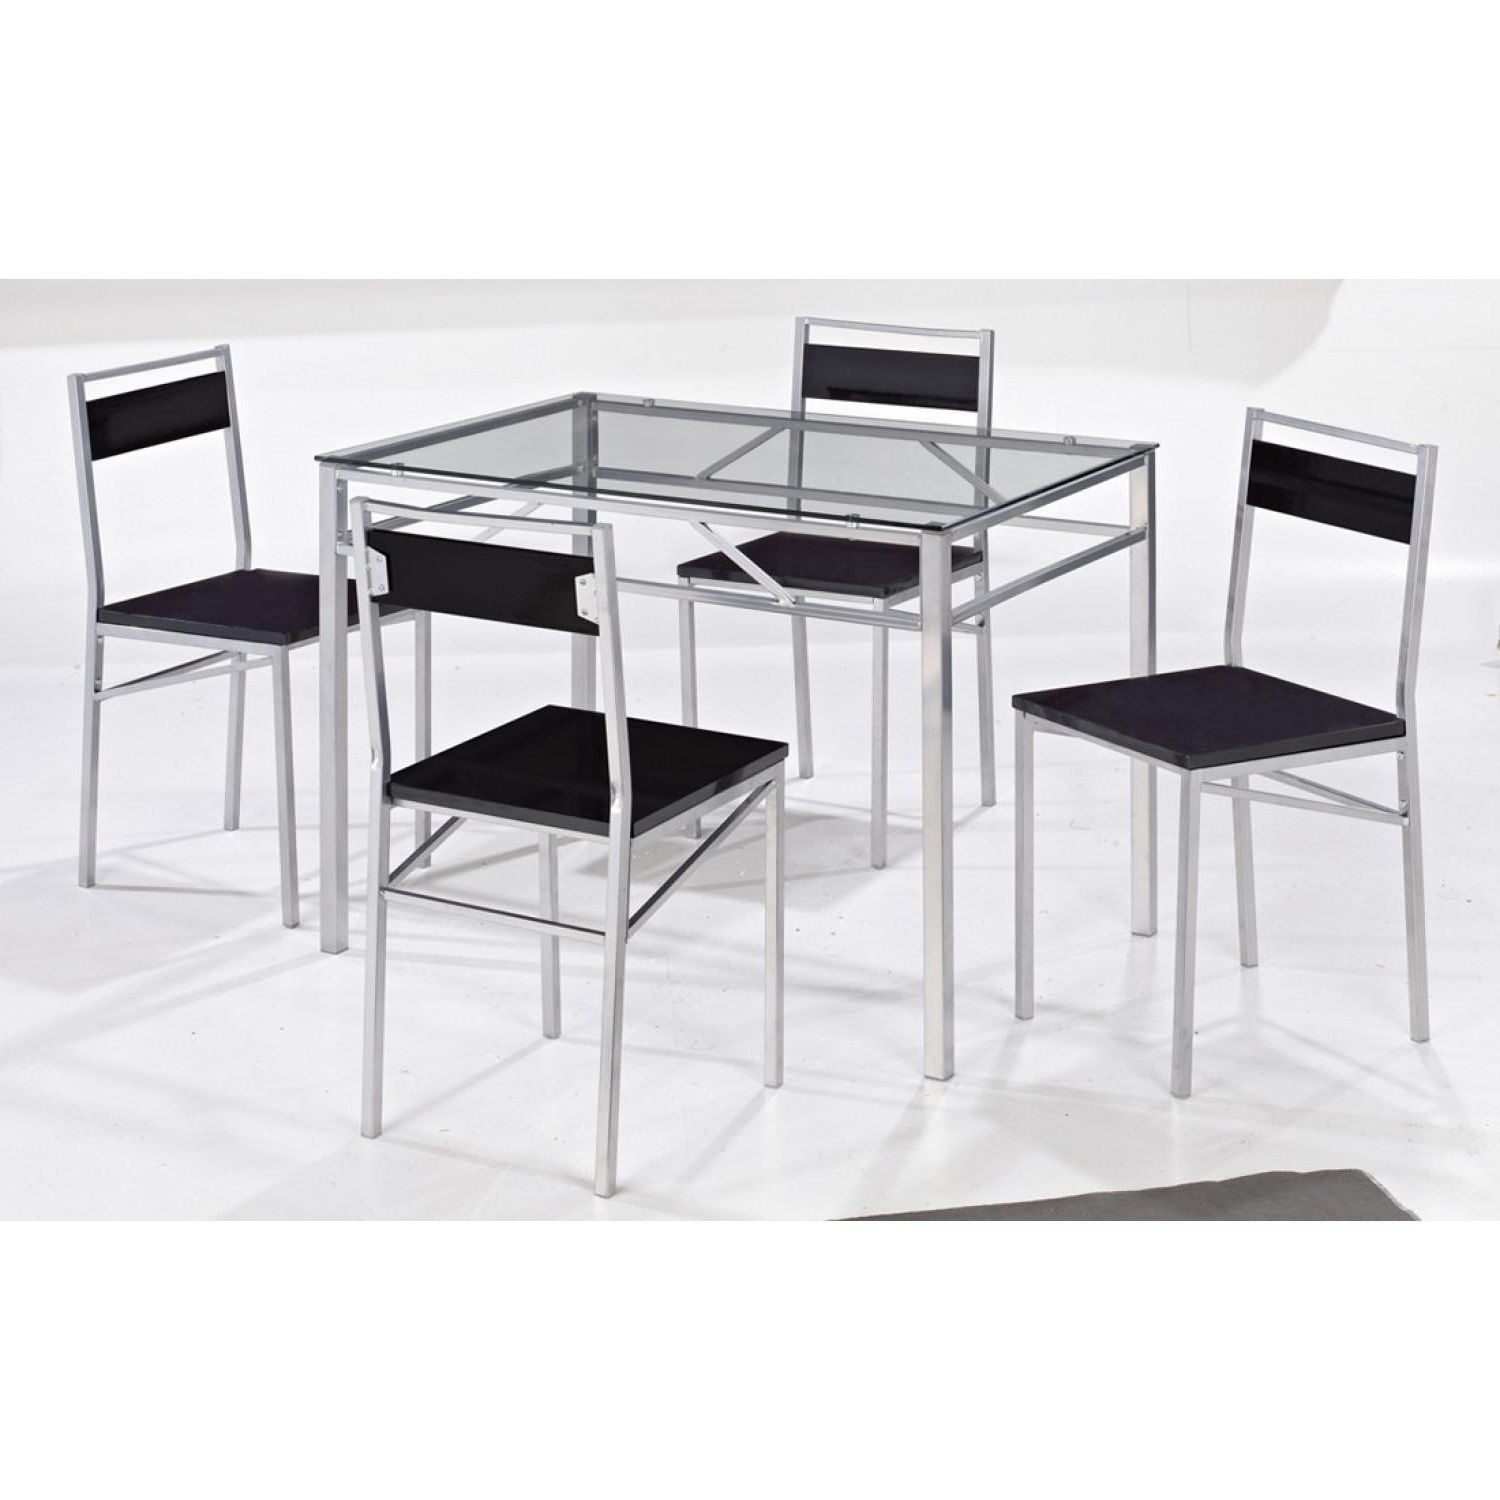 2018 Tokyo Dining Set 4 Seater – Clear Glass Dining Table & 4 Chairs Throughout Tokyo Dining Tables (Gallery 4 of 25)